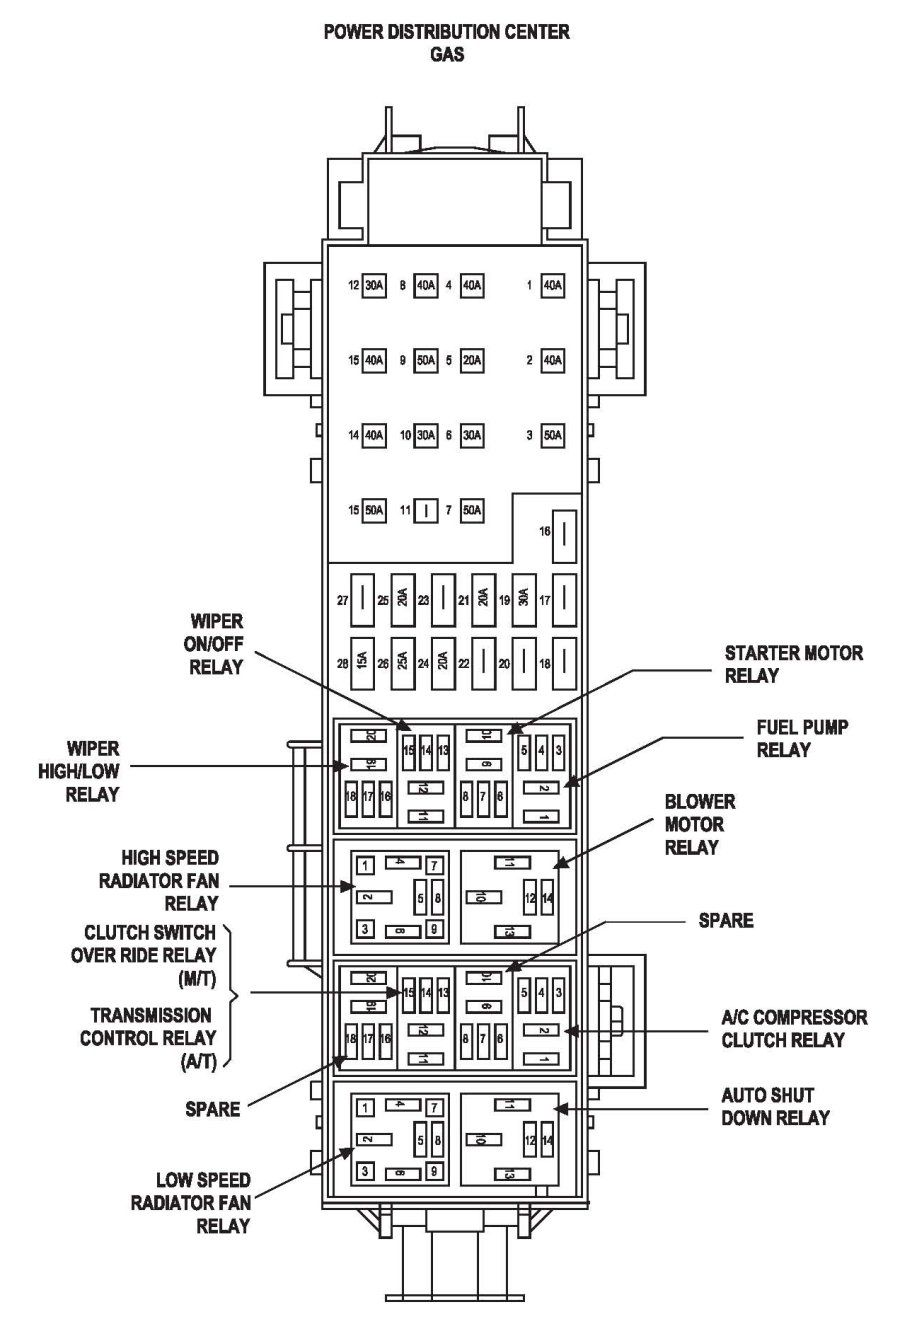 06 jeep liberty fuse box diagram